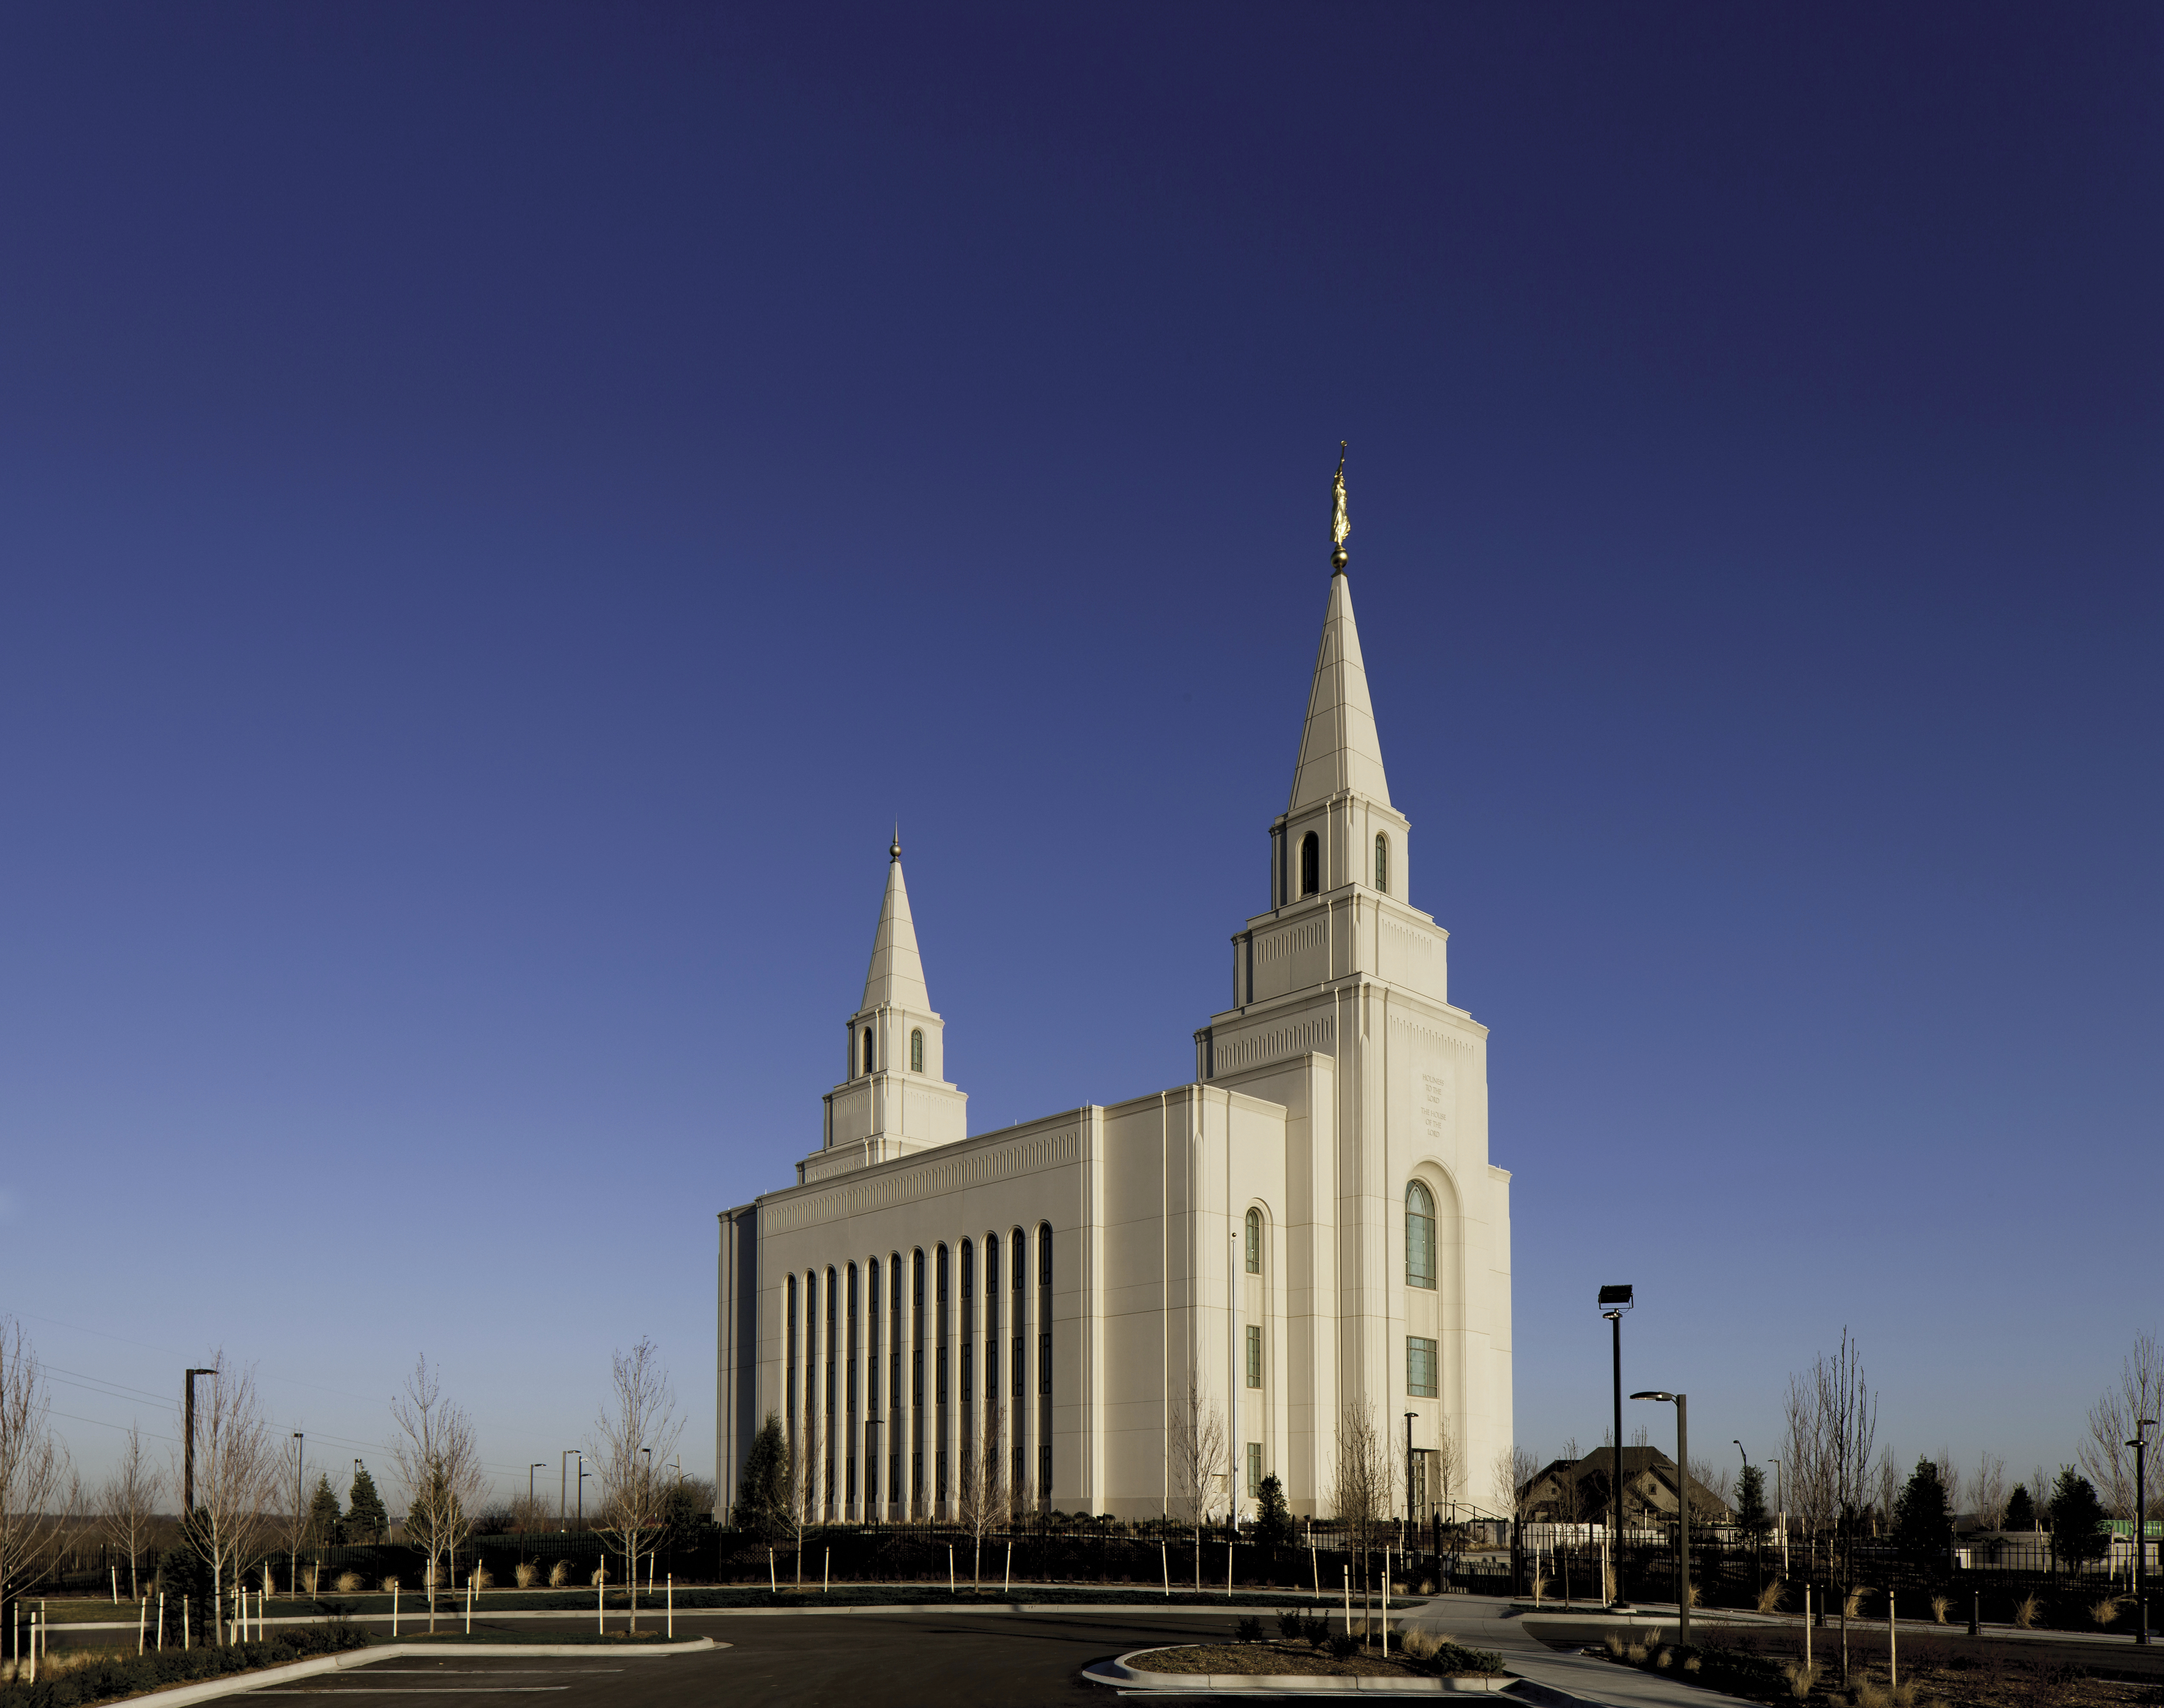 A view of the Kansas City Missouri Temple from the grounds.